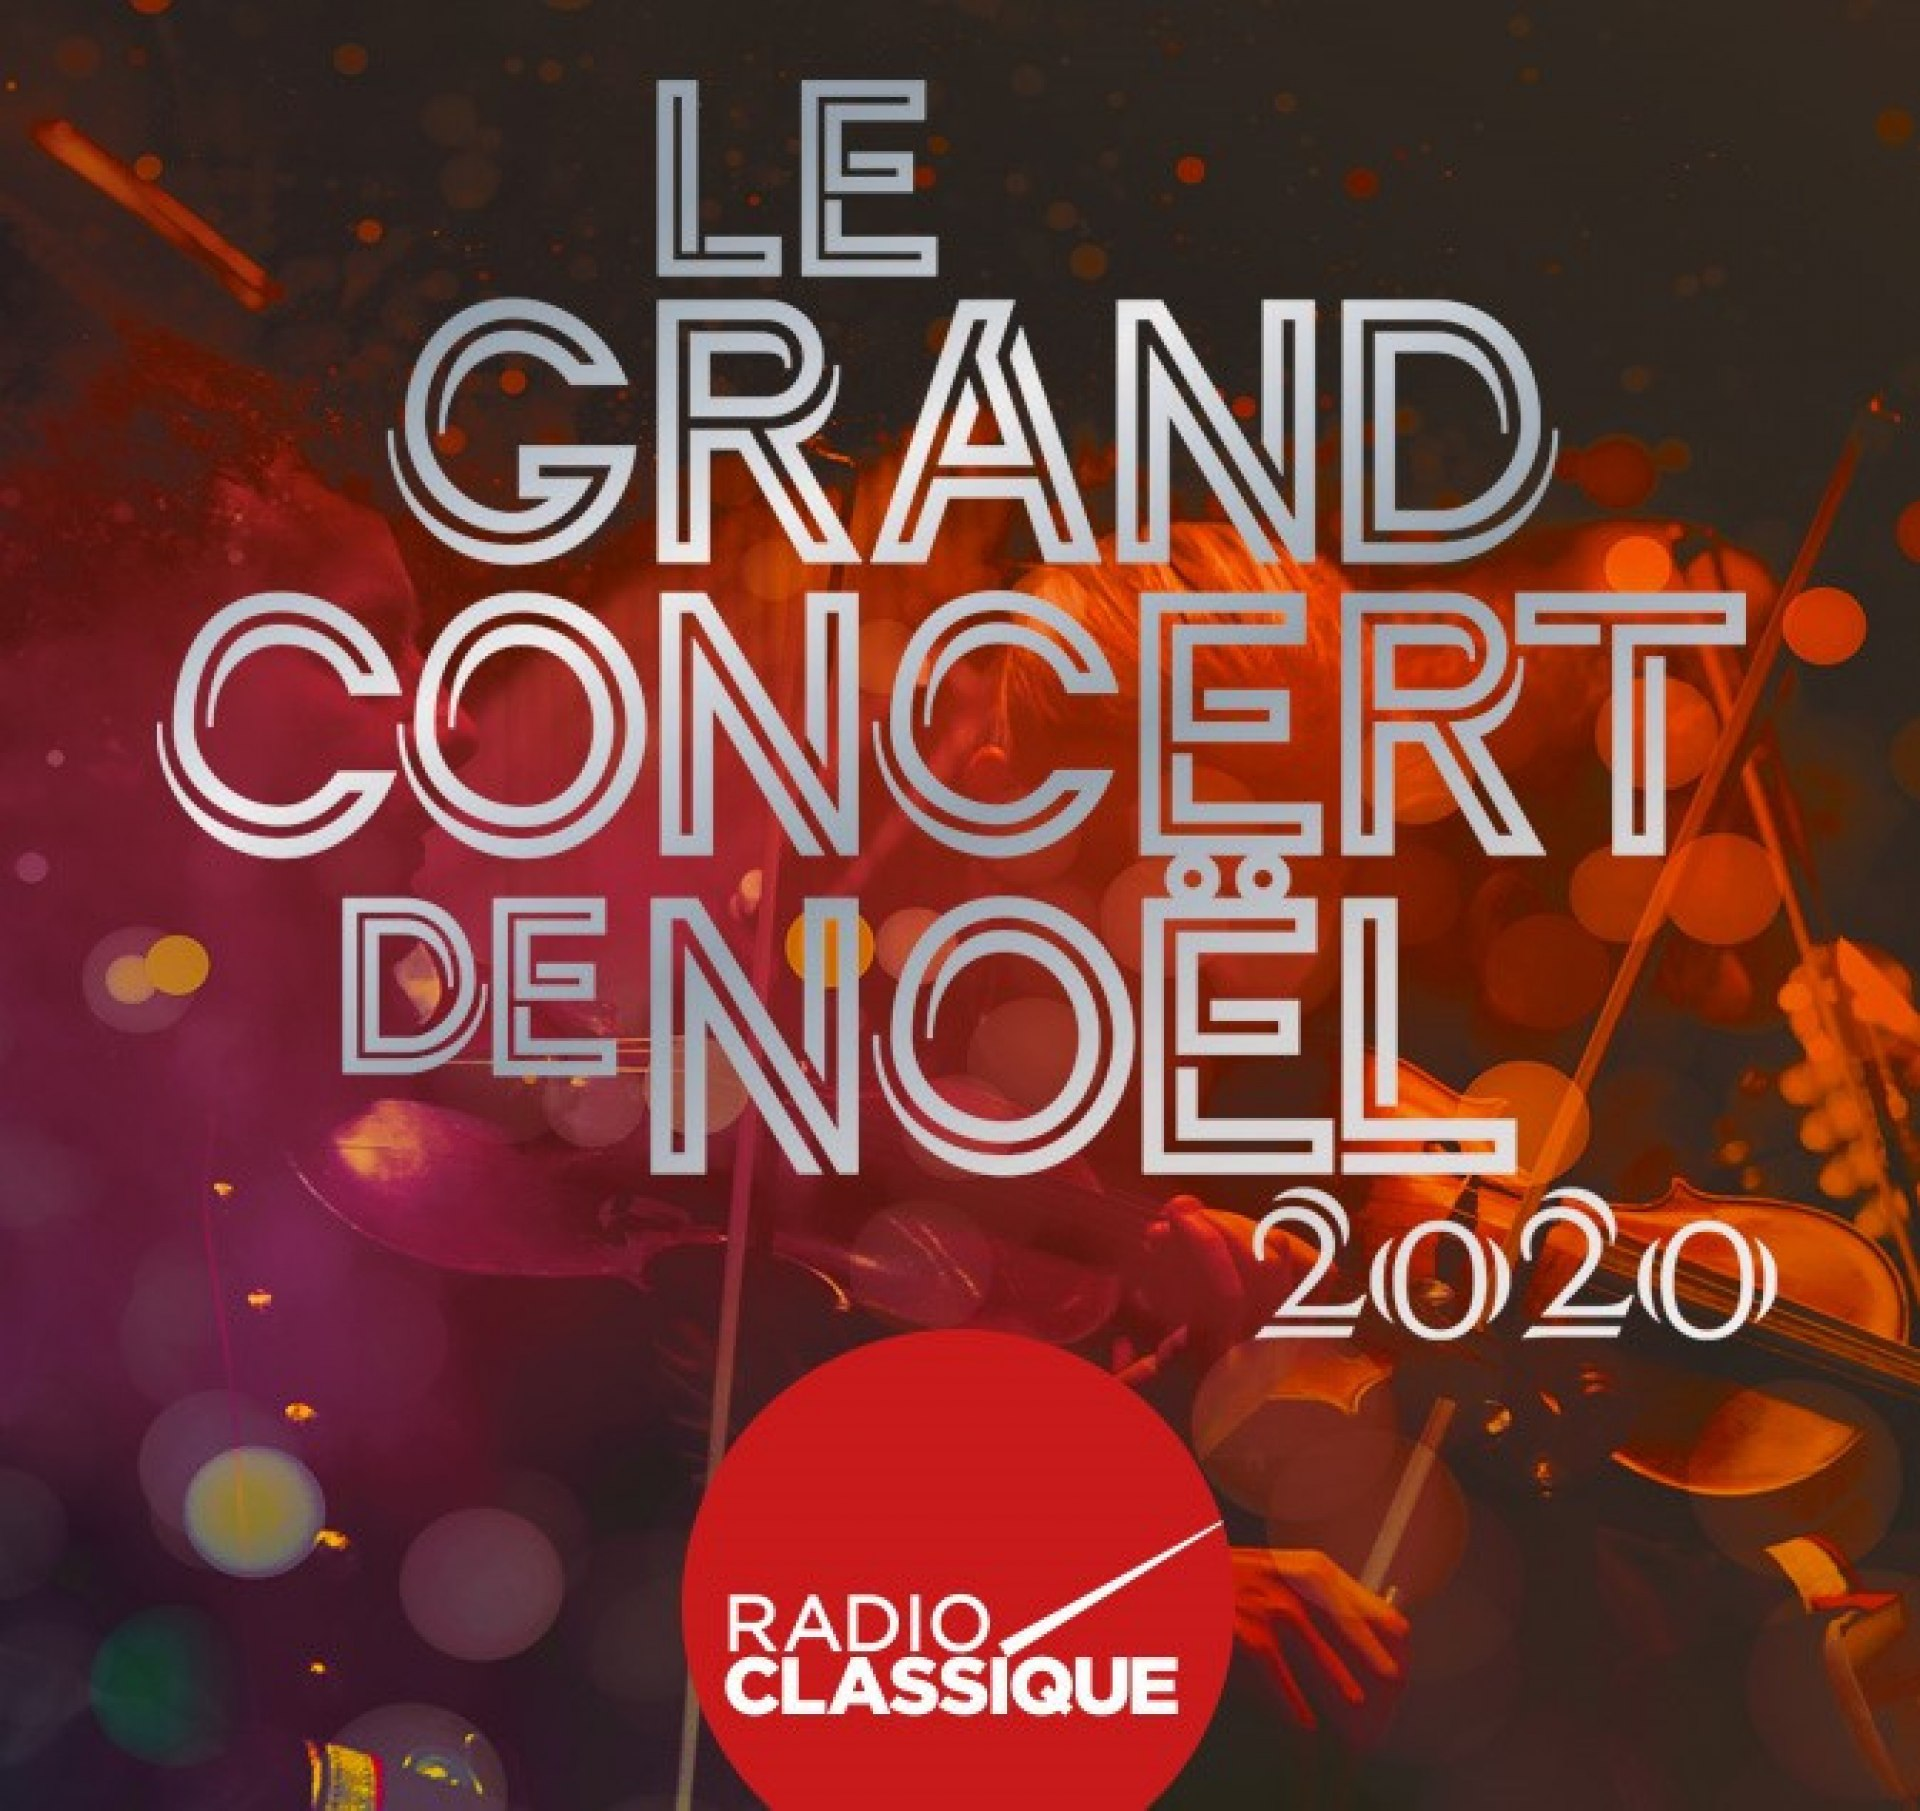 The Great Christmas Concert of Radio Classique